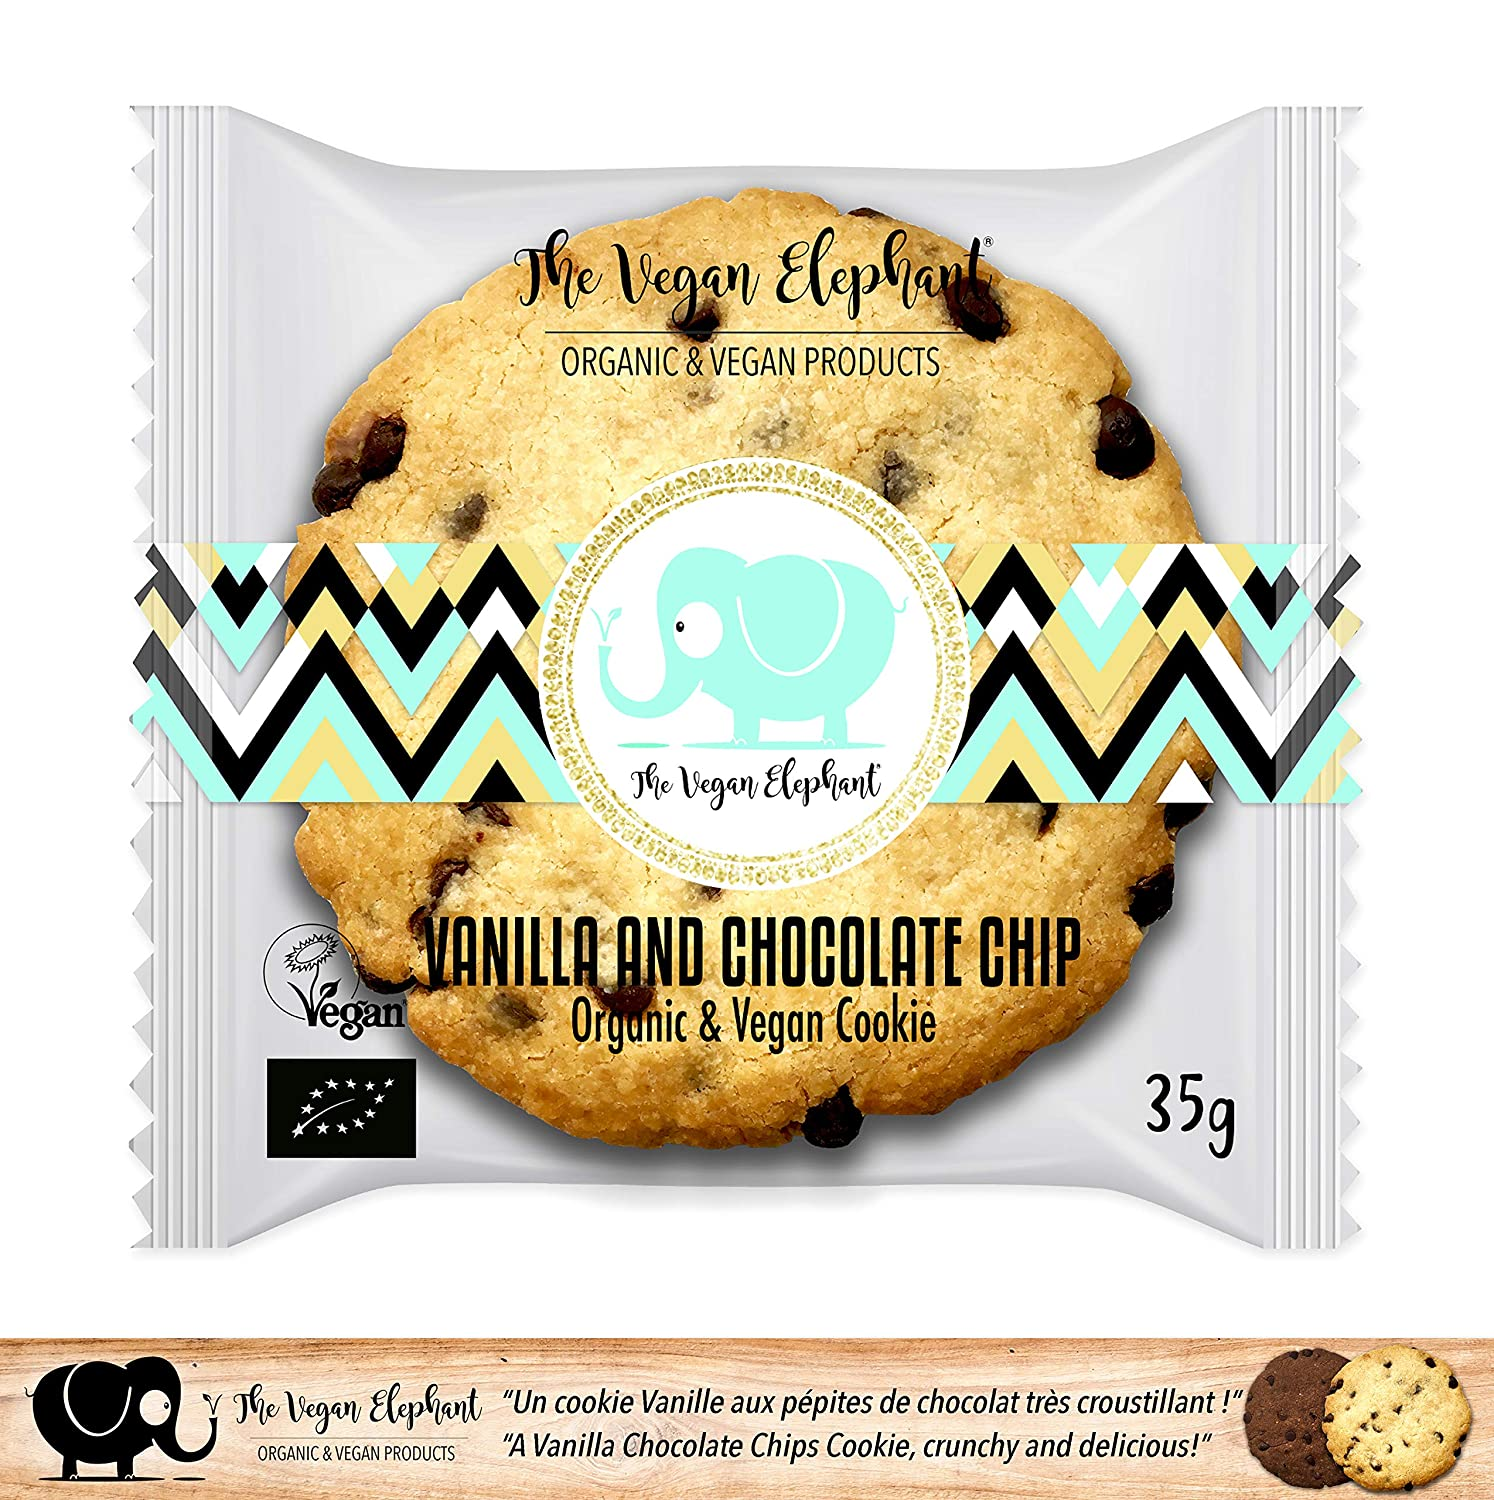 17 Galletas Orgánicas y Veganas Vainilla y Chocolate.595g (PACK OF 2): Amazon.es: Alimentación y bebidas